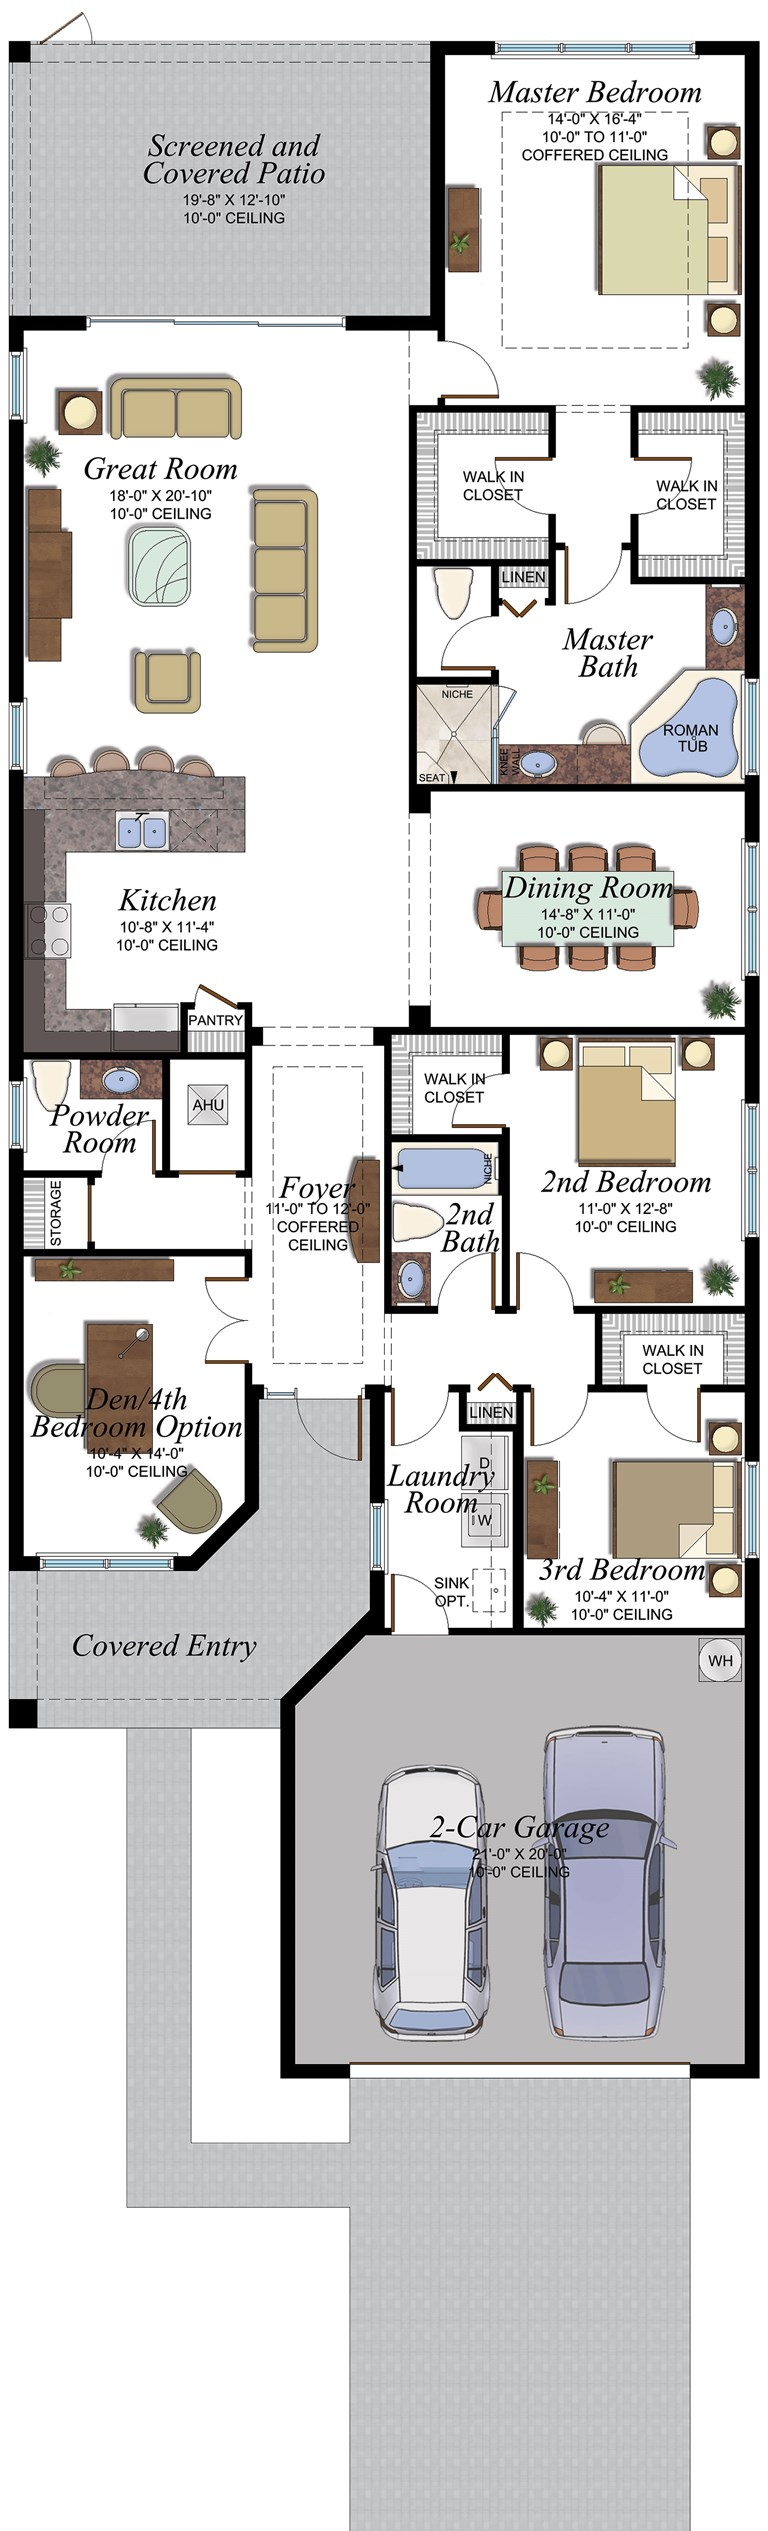 454 Tribeca floorplan